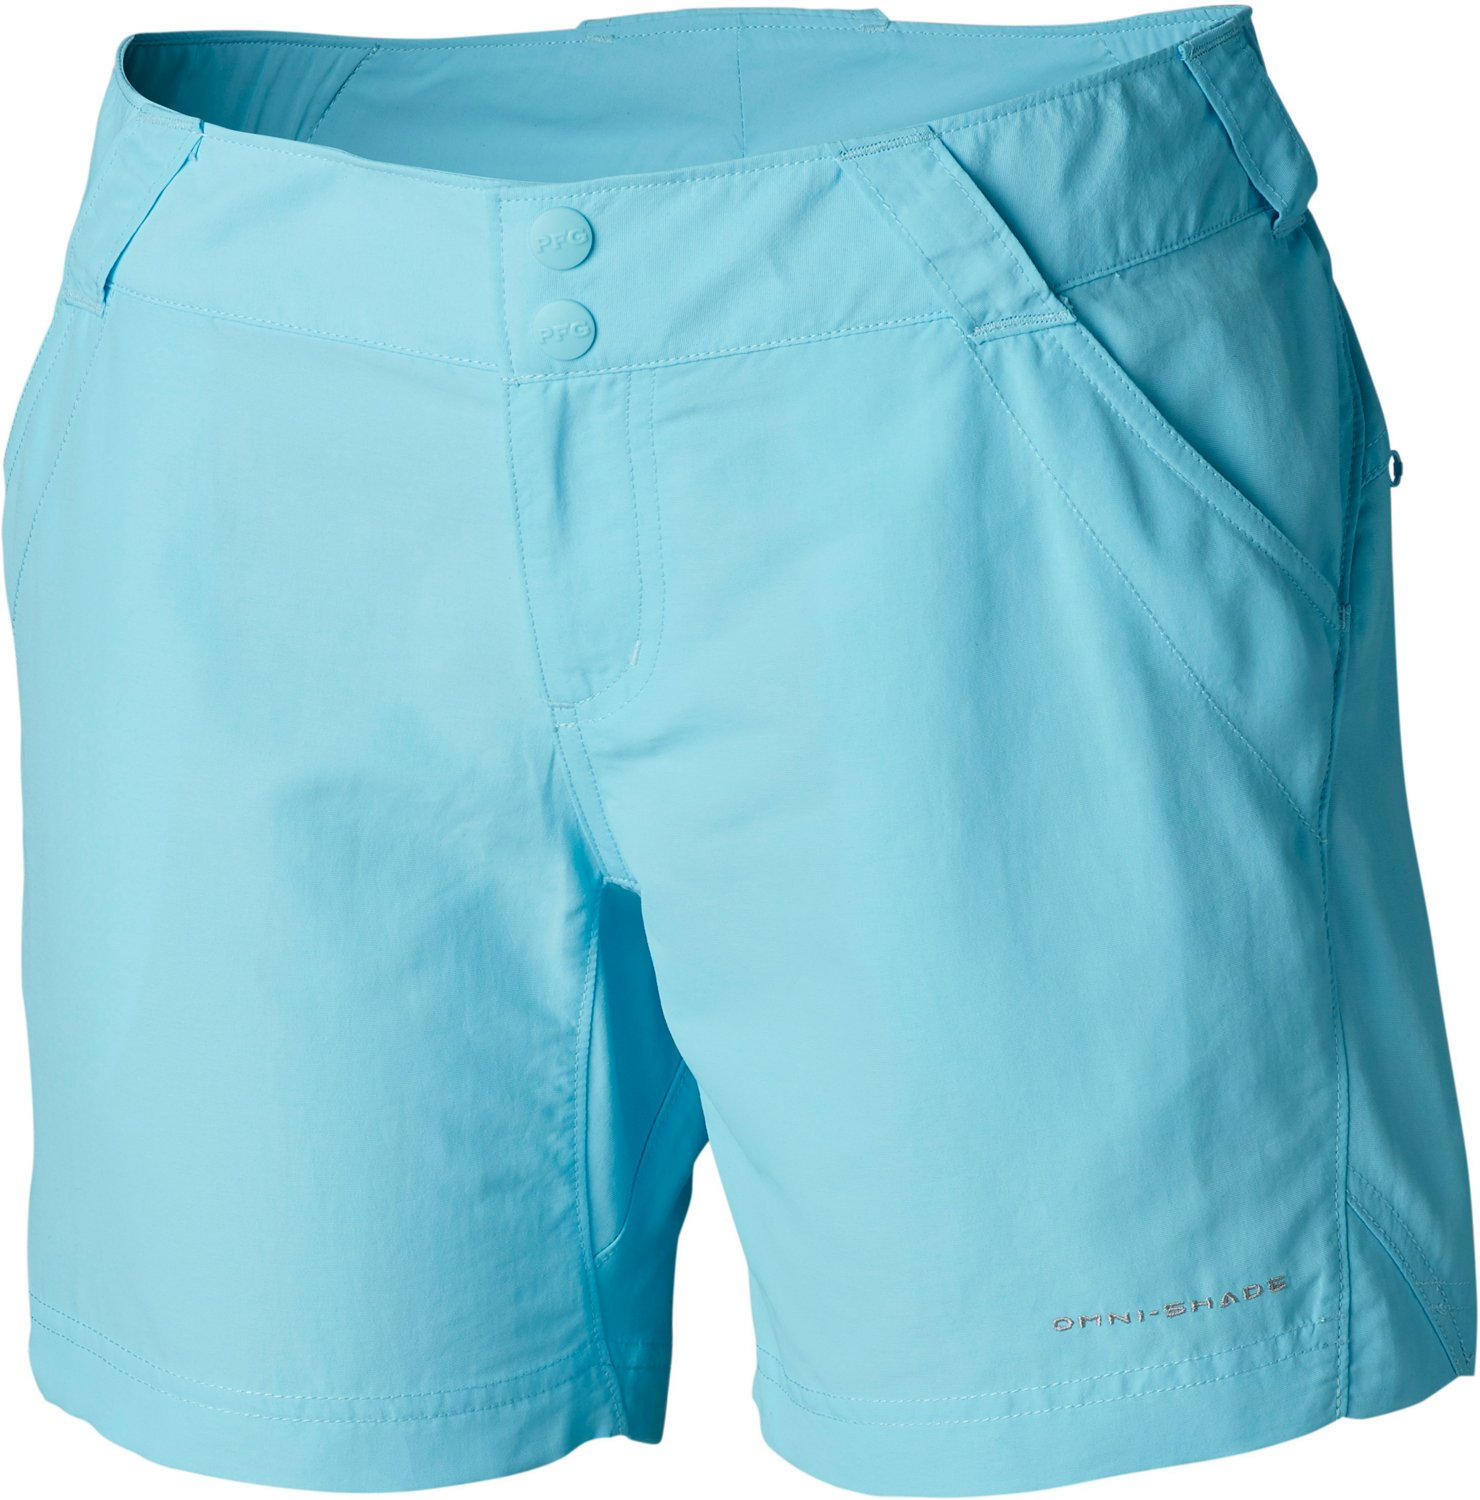 cheap for discount ab46d 22139 Display product reviews for Columbia Sportswear Women s PFG Coral Point II Short  This product is currently selected